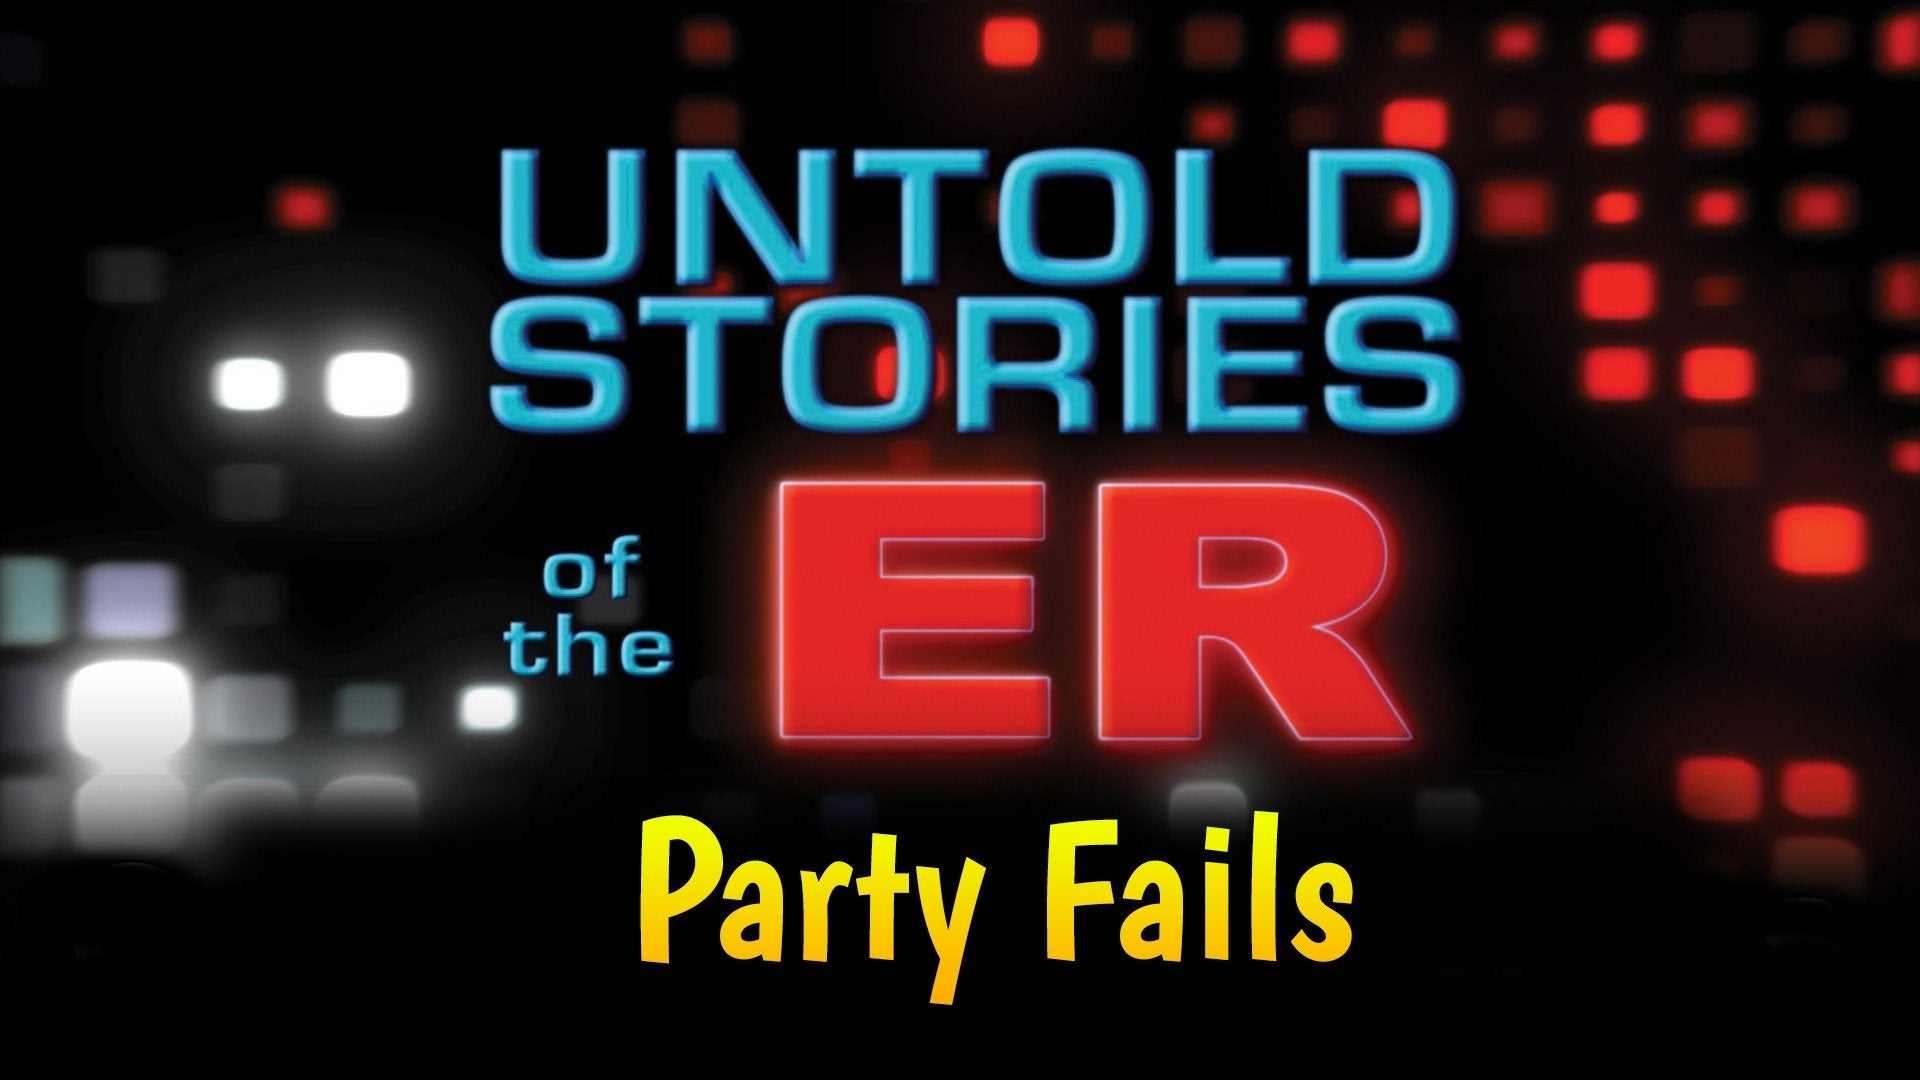 Untold Stories of the ER: Party Fails